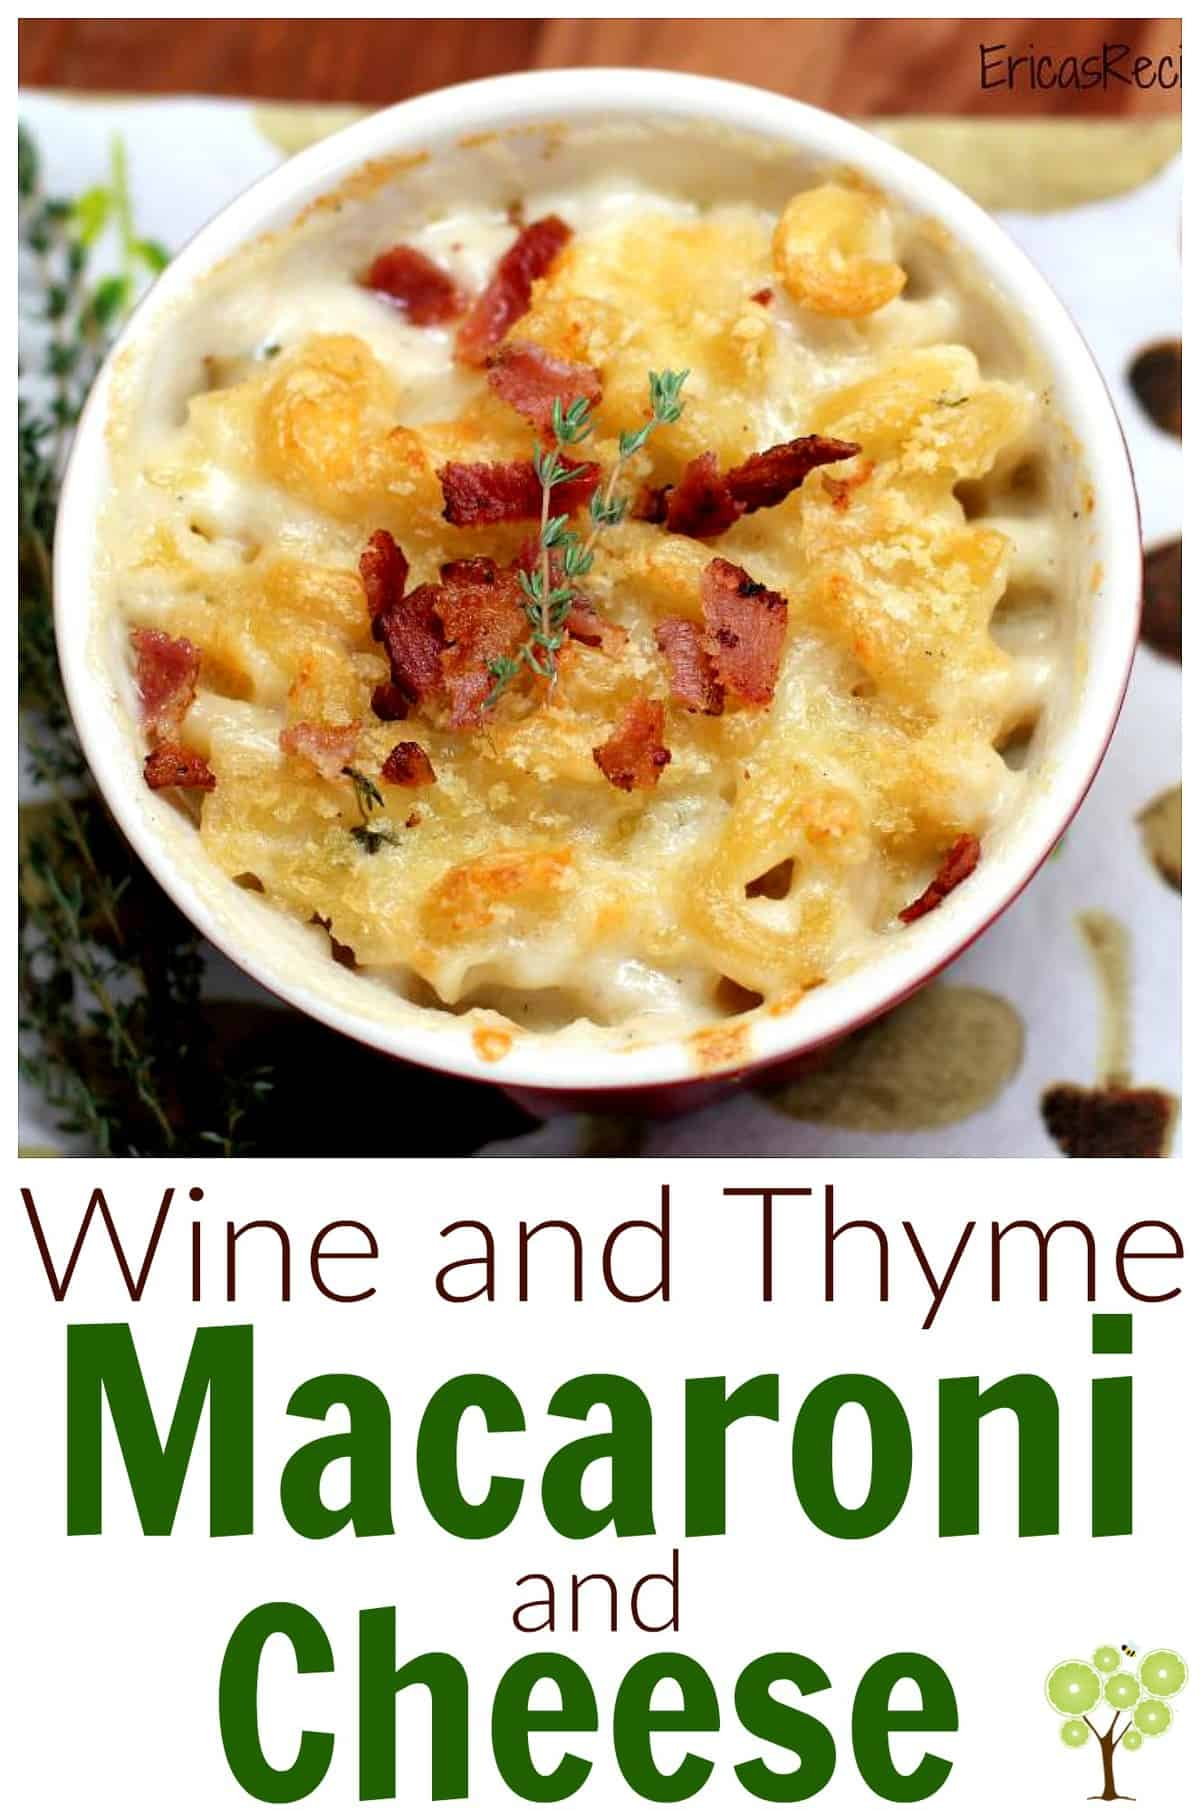 Wine and Thyme Macaroni and Cheese #recipe #macaroniandcheese #food #comfortfood #cheese